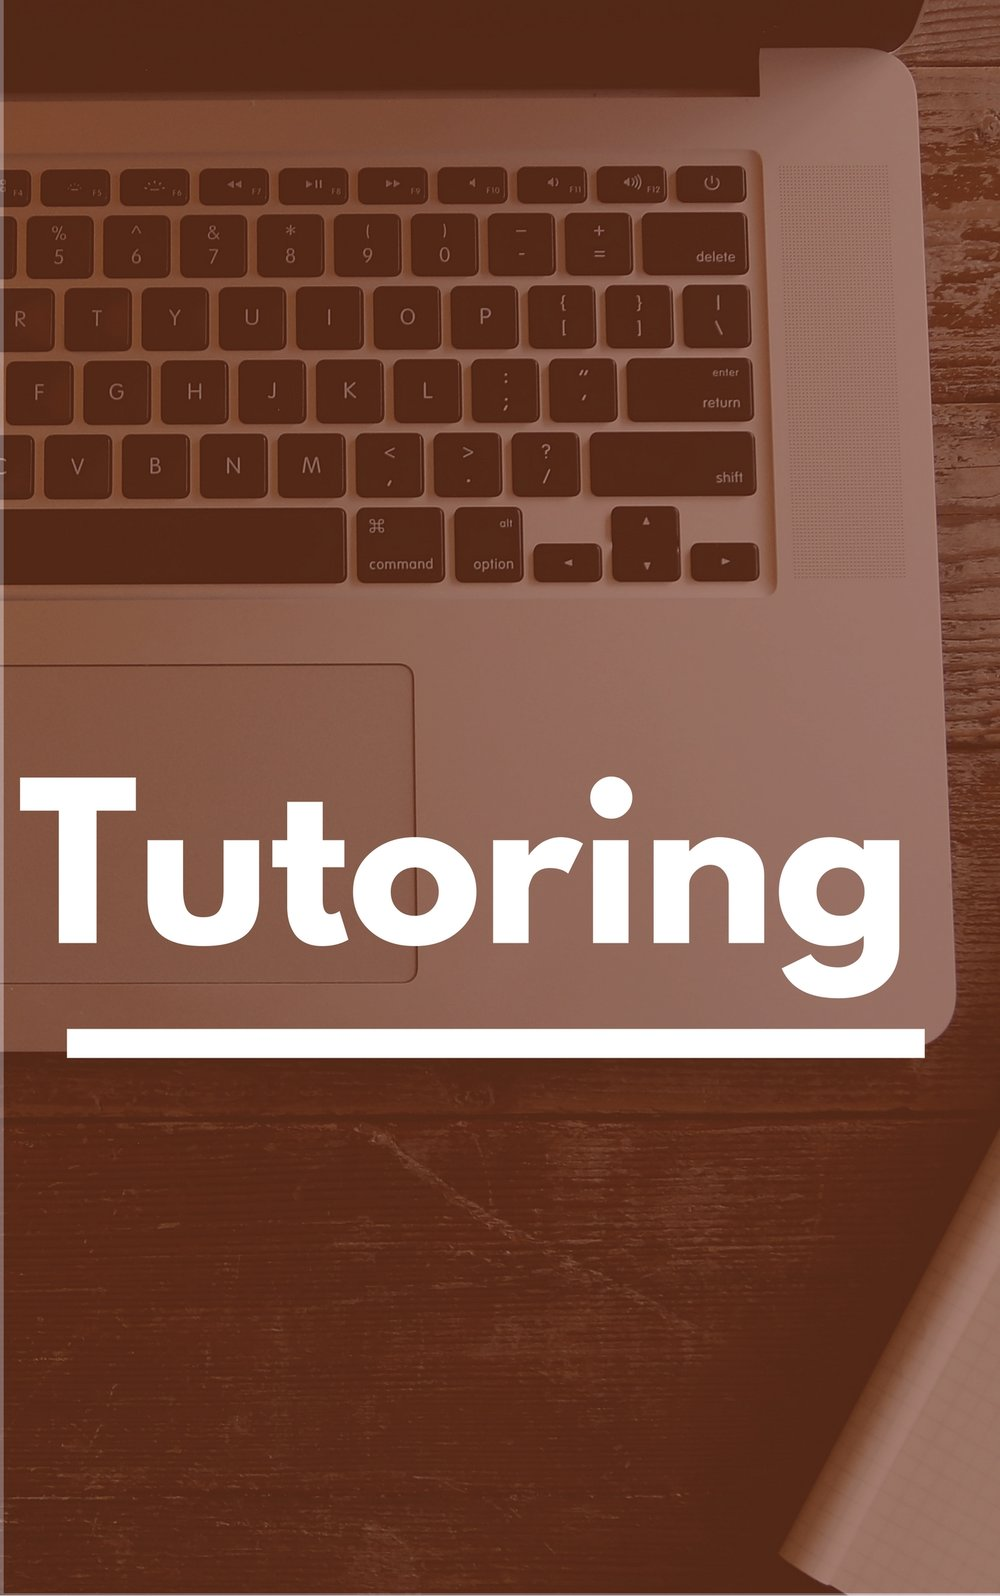 Tutoring - Glen Rock Public Library - NJ